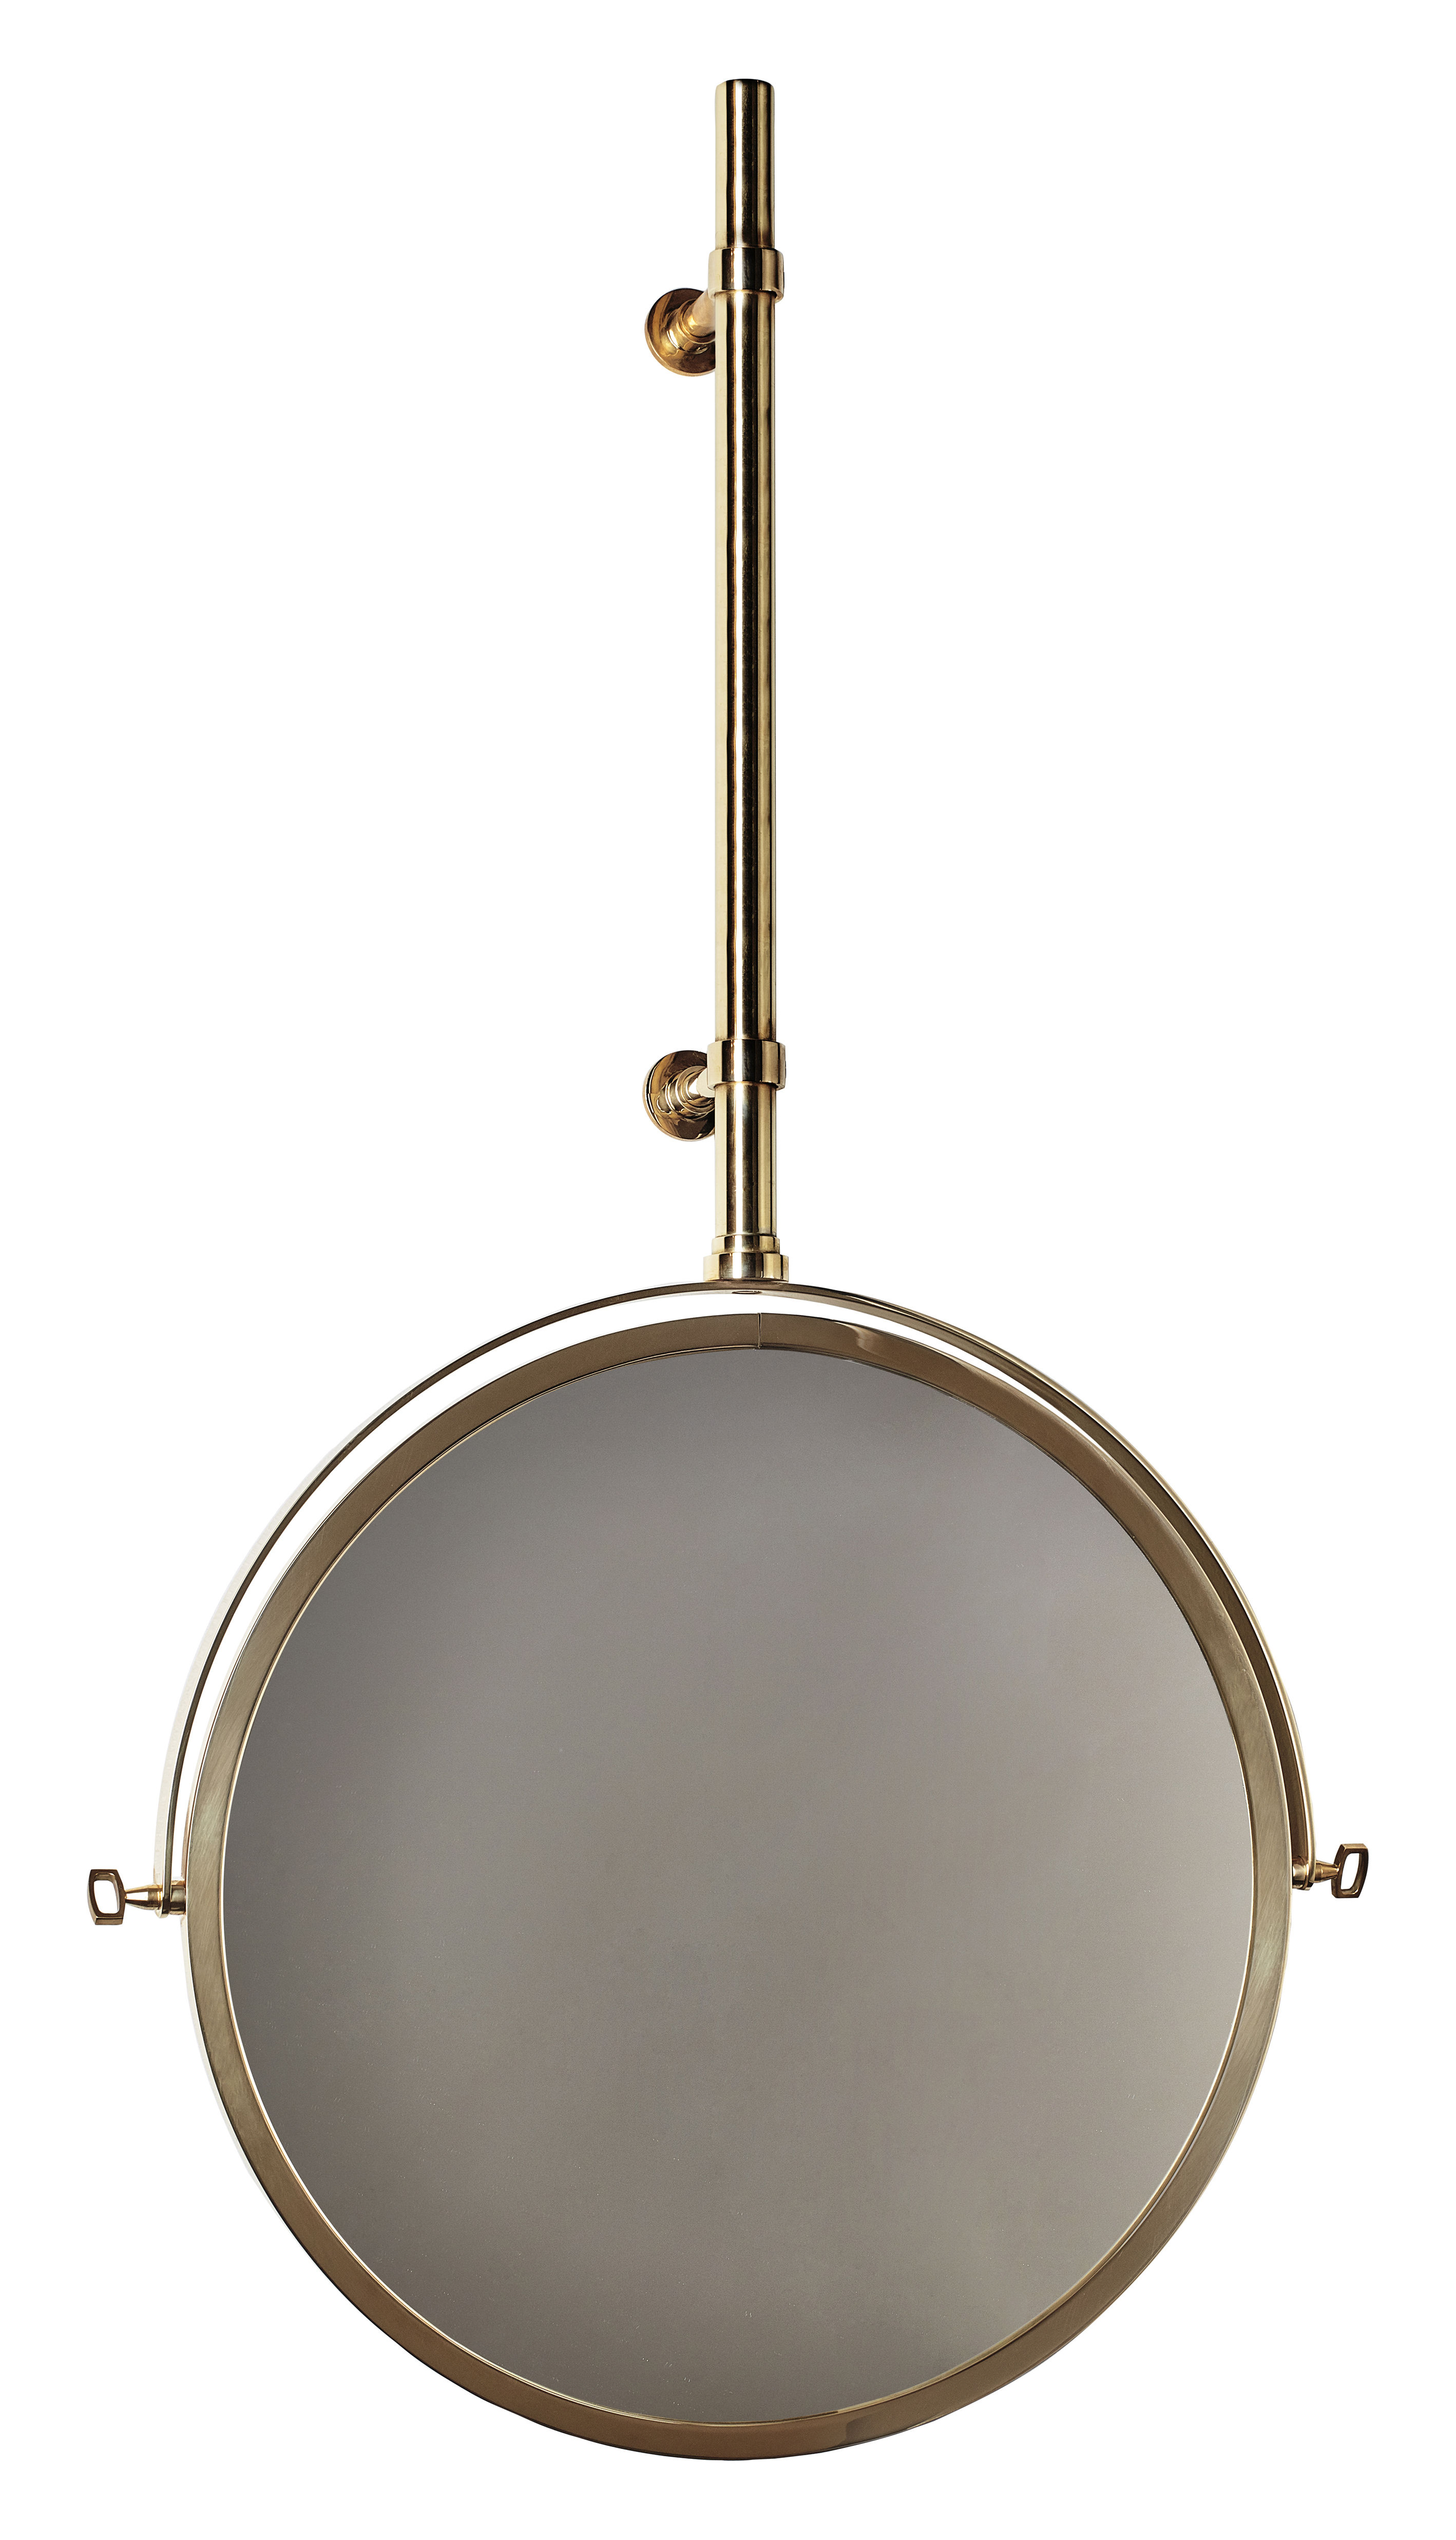 Decoration - Mirrors - MbE Wall mirror - Adjustable - Ø 44 cm by DCW éditions - Brass - Glass, Polished brass